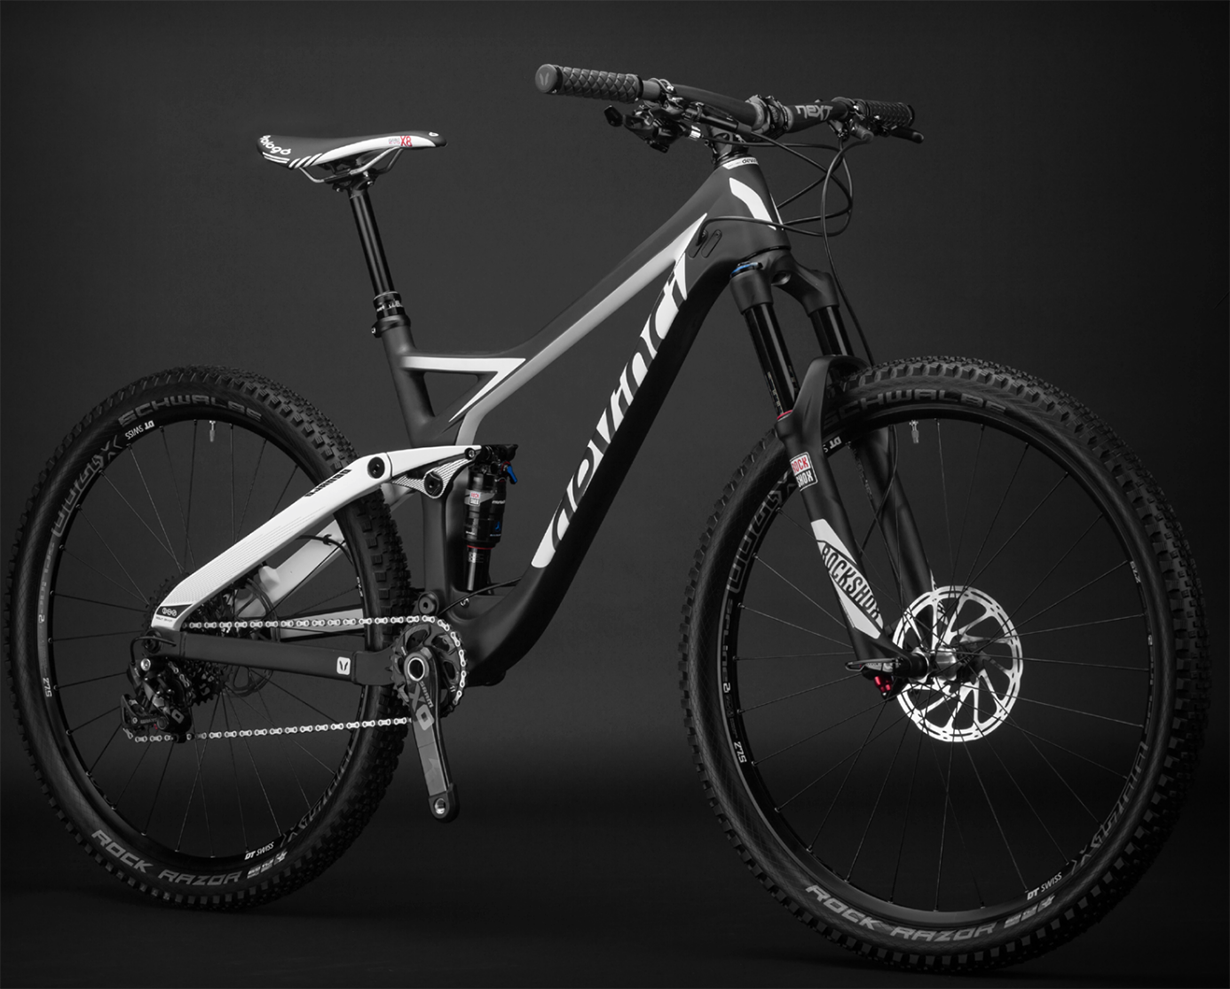 Noah Bodman reviews the Devinci Django 29  for Blister gear Review.